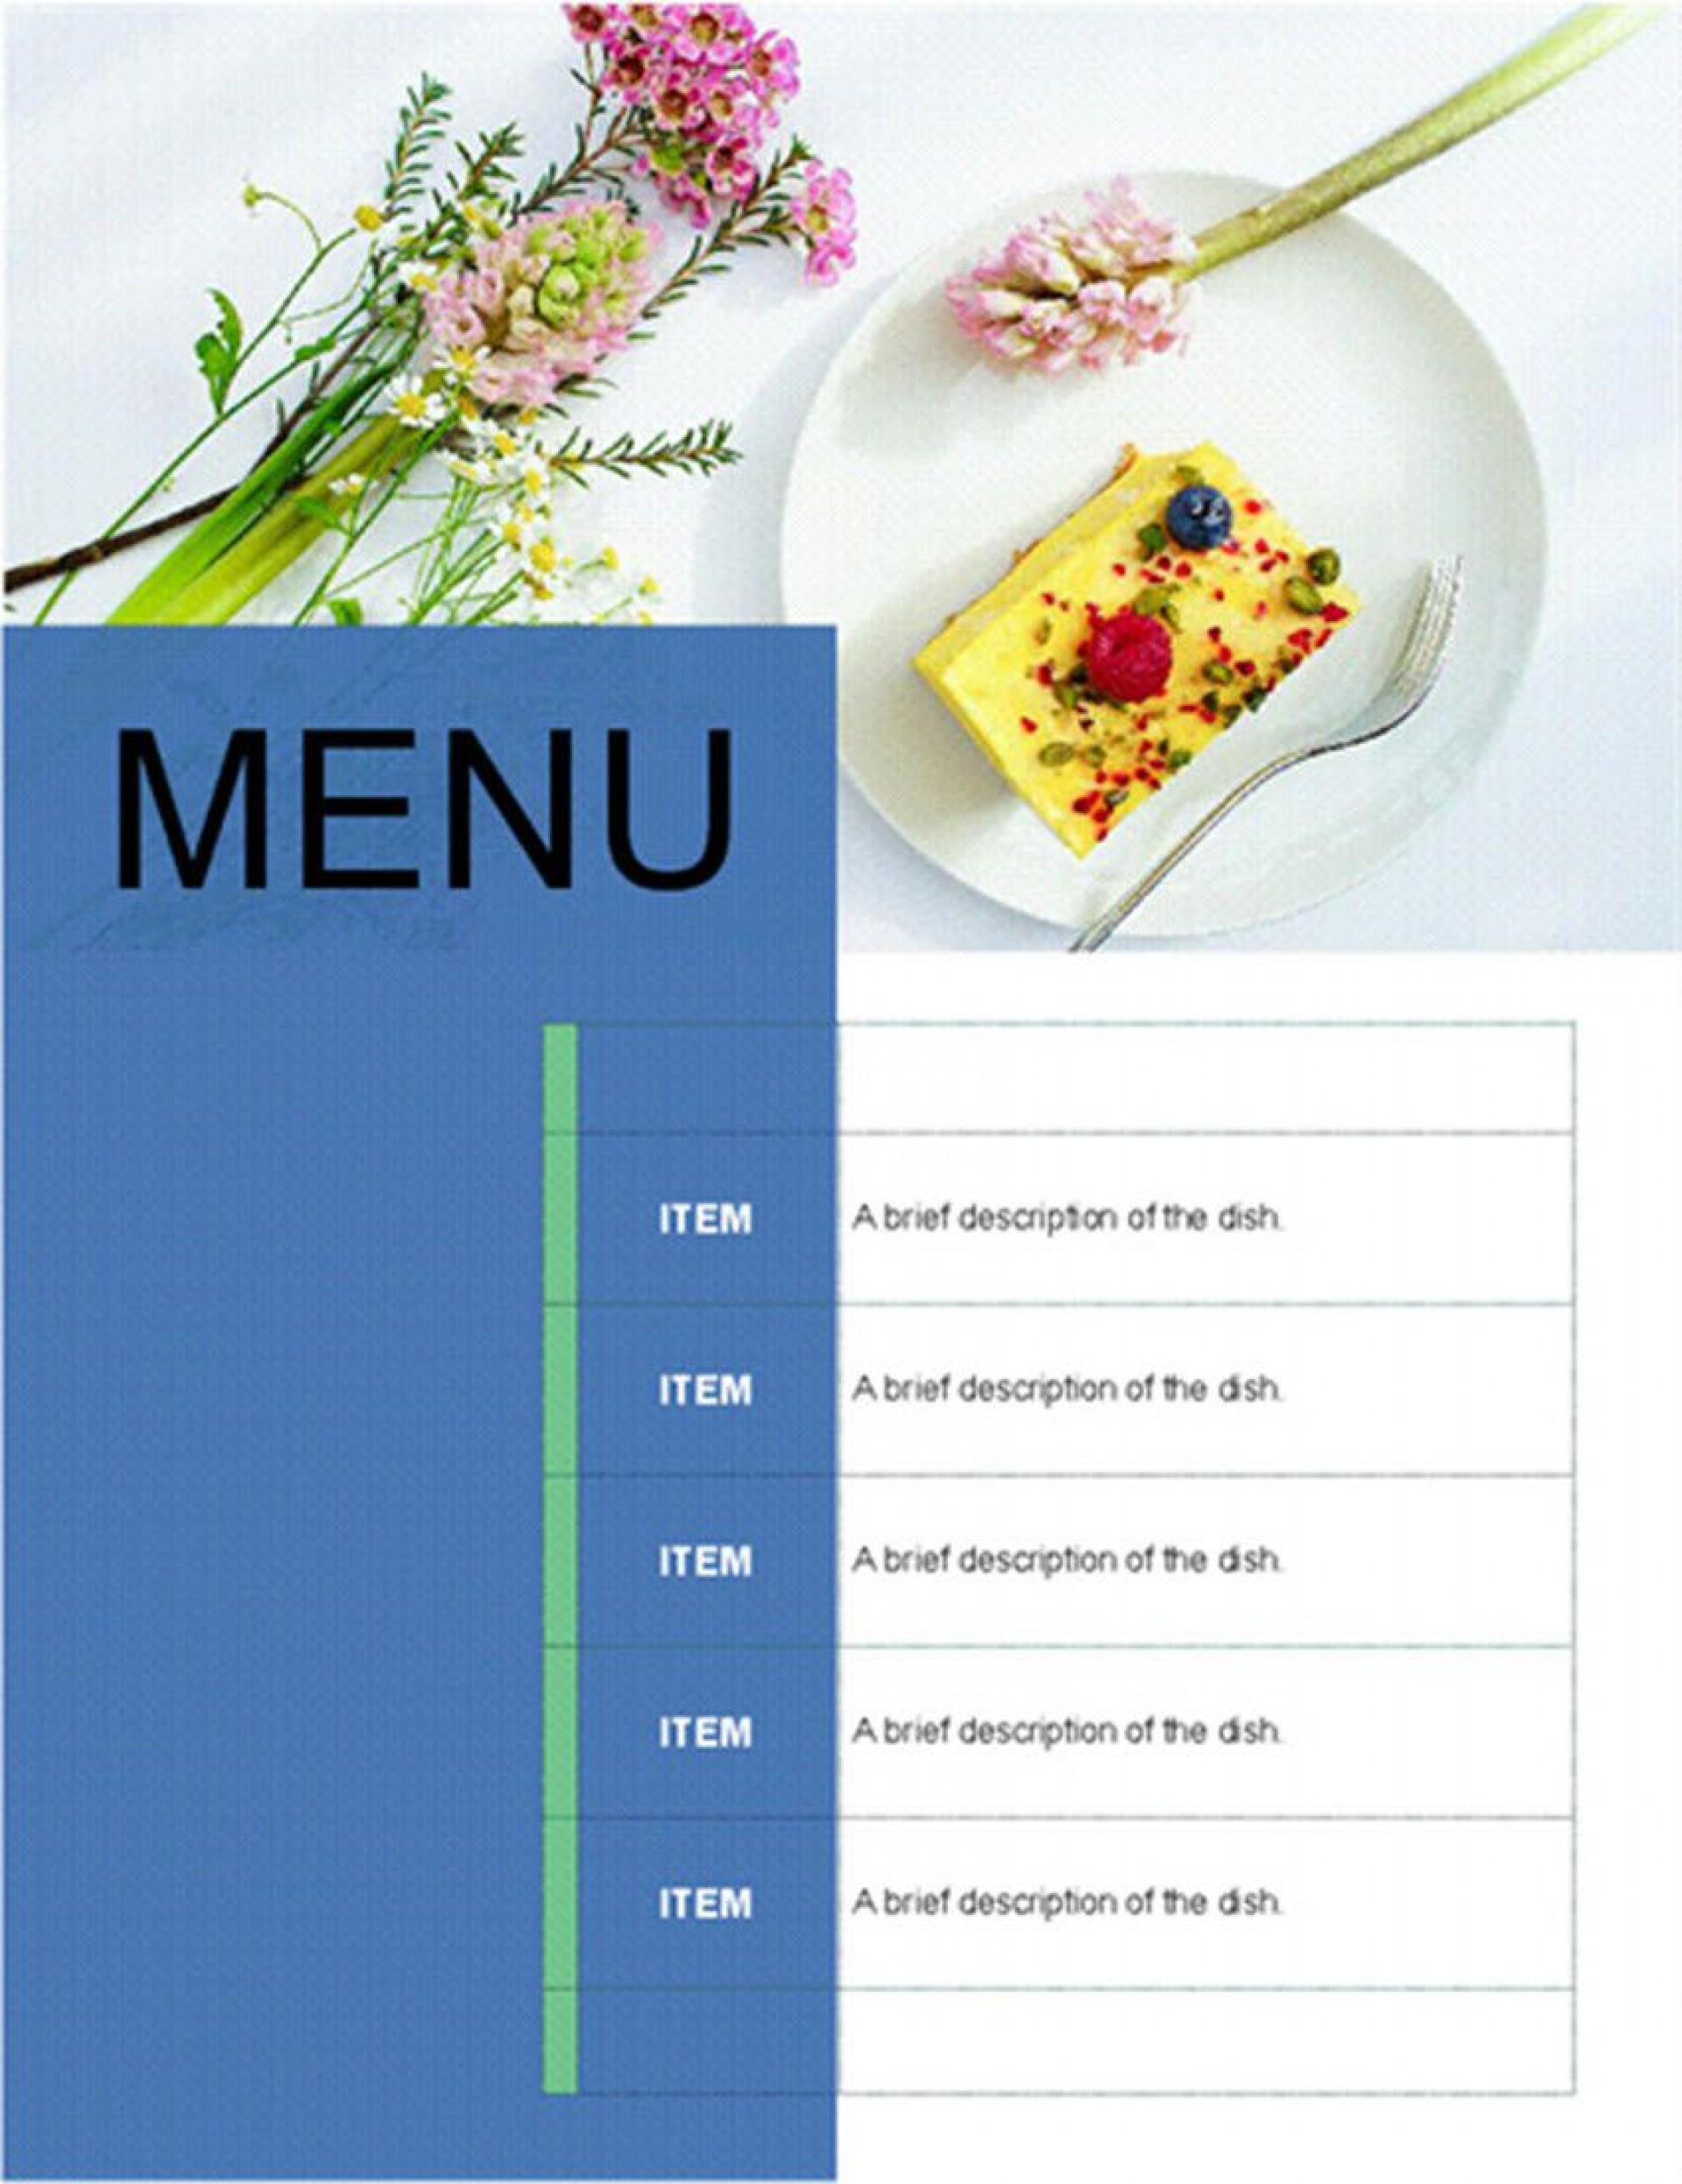 005 Awesome Food Menu Card Template Free Download Inspiration 1920